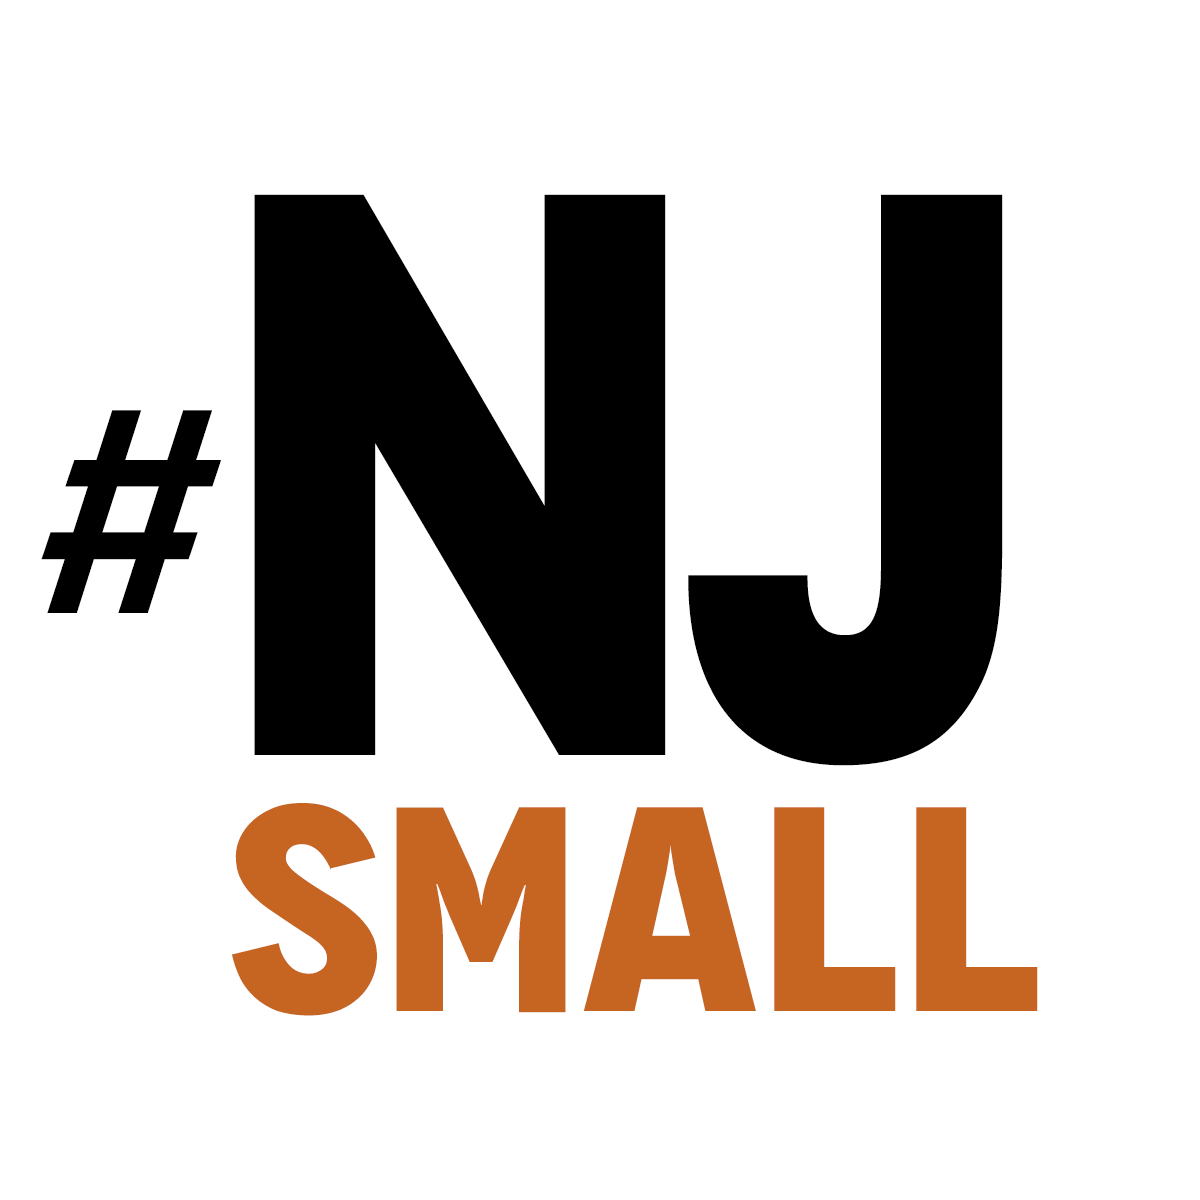 NJsmall: hiring small is better for all